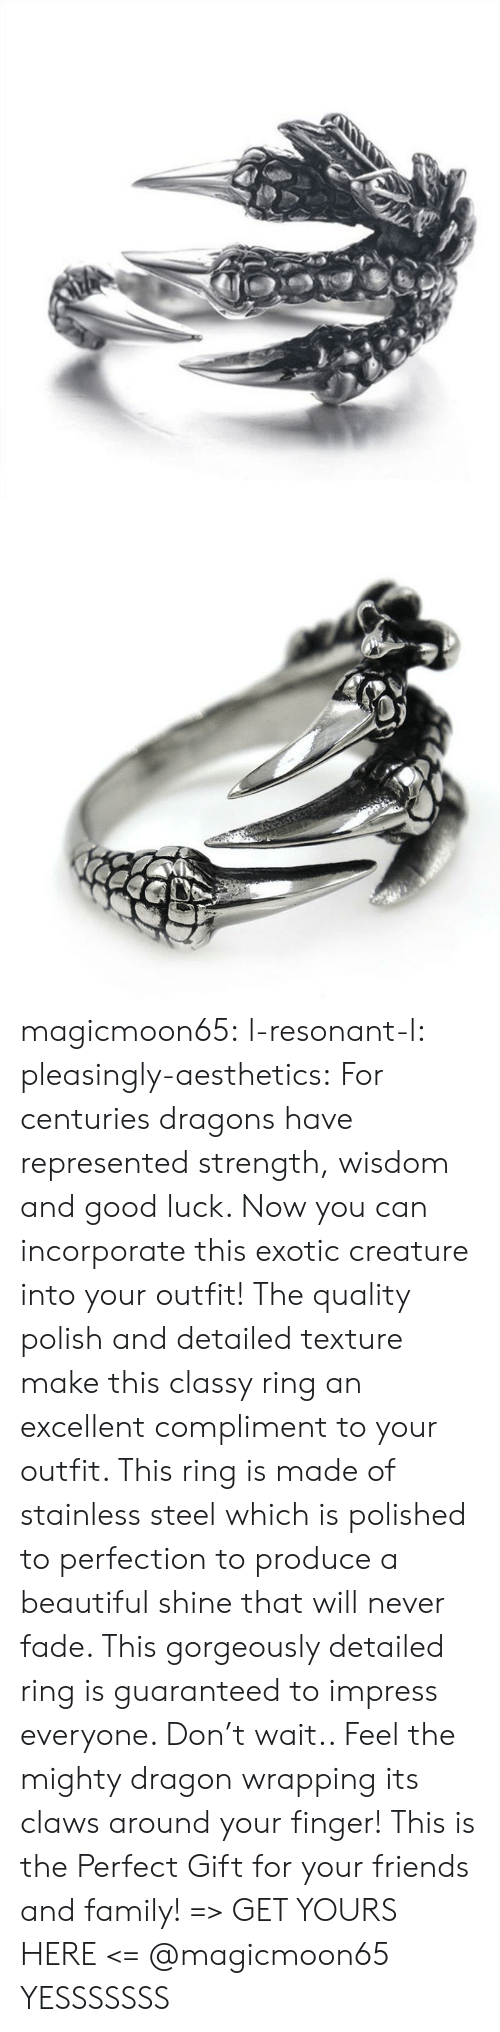 polish: magicmoon65:  l-resonant-l:  pleasingly-aesthetics: For centuries dragons have represented strength, wisdom and good luck. Now you can incorporate this exotic creature into your outfit! The quality polish and detailed texture make this classy ring an excellent compliment to your outfit. This ring is made of stainless steel which is polished to perfection to produce a beautiful shine that will never fade.  This gorgeously detailed ring is guaranteed to impress everyone. Don't wait.. Feel the mighty dragon wrapping its claws around your finger! This is the Perfect Gift for your friends and family! => GET YOURS HERE <=   @magicmoon65   YESSSSSSS